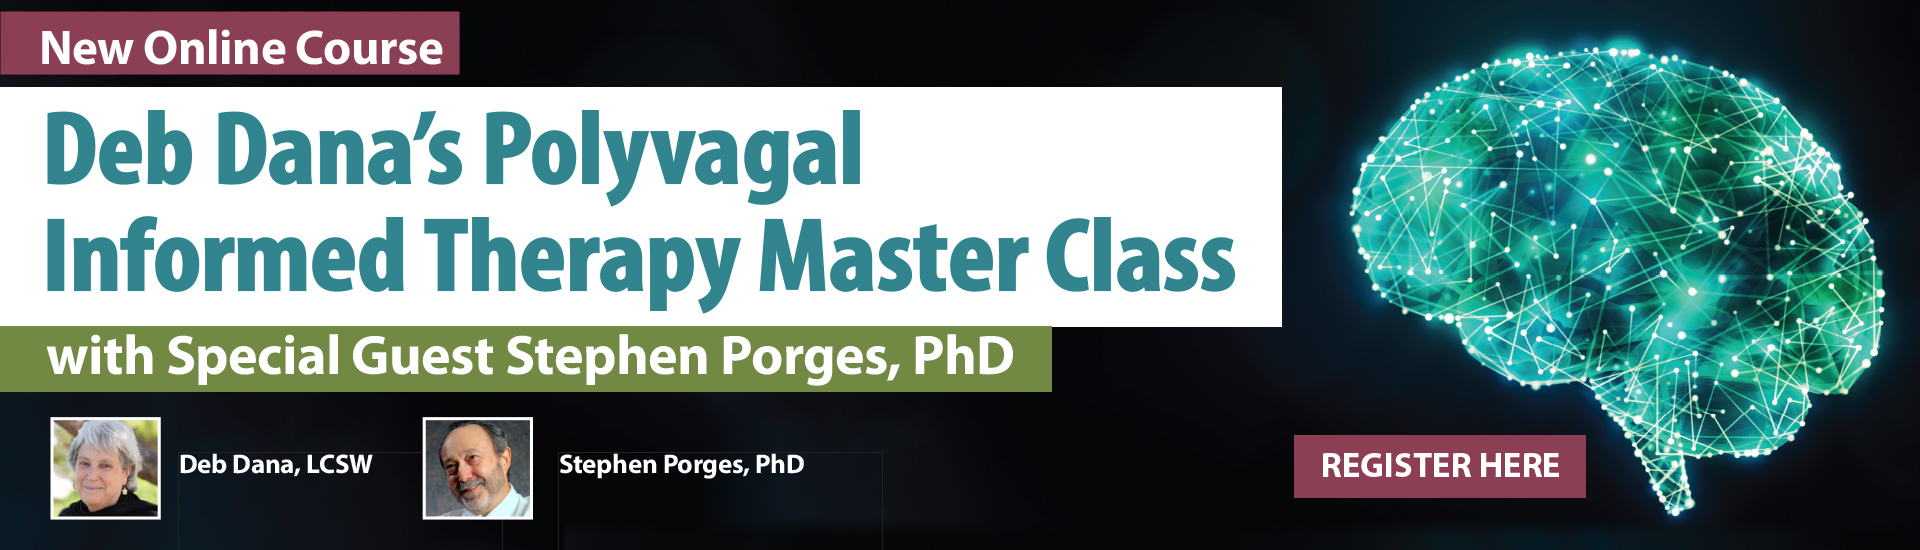 Deb Dana's Polyvagal Informed Therapy Master Class